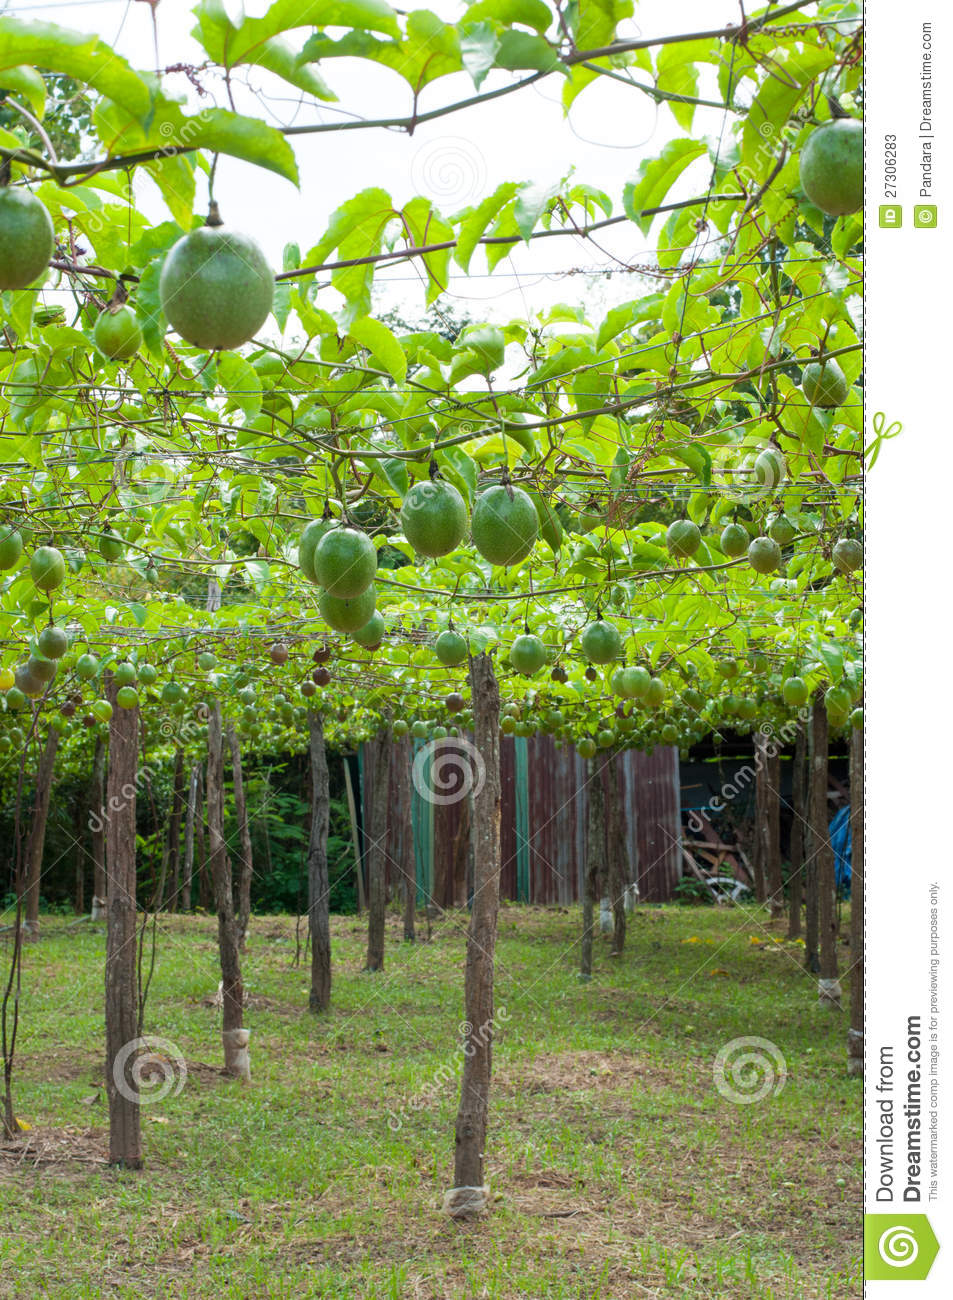 Passion fruit garden stock image image of food green for Gardening is my passion